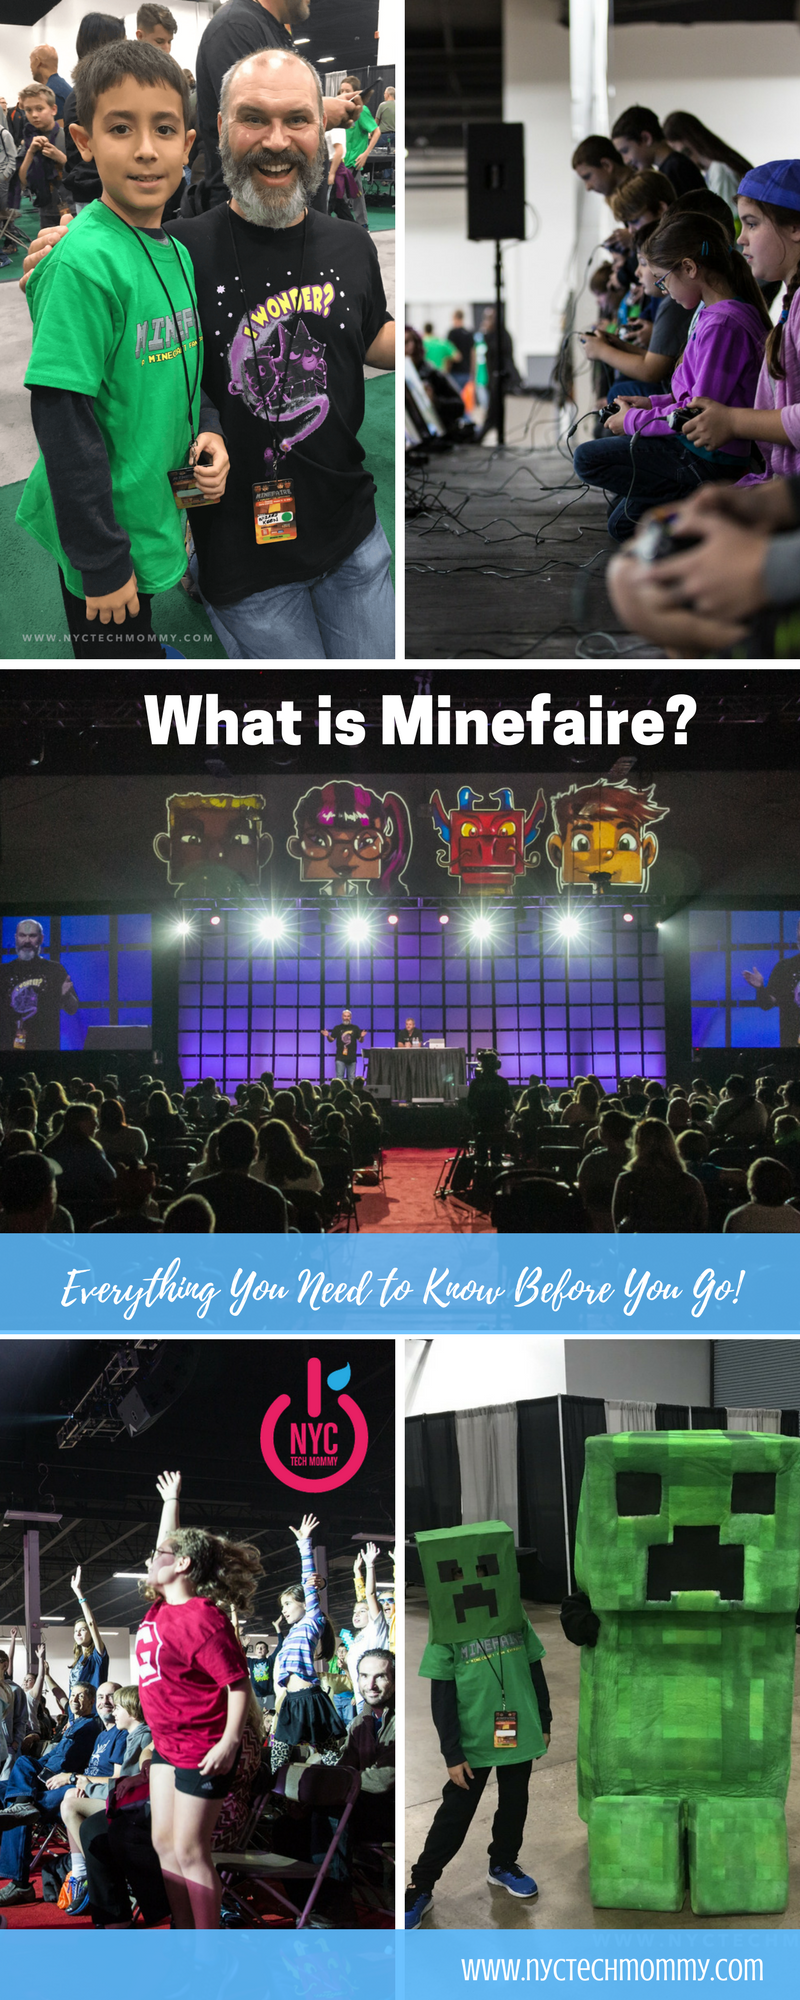 What is Minefaire? It's a massive Minecraft-inspired experience you won't want to miss -- learn everything you need to know before you go!